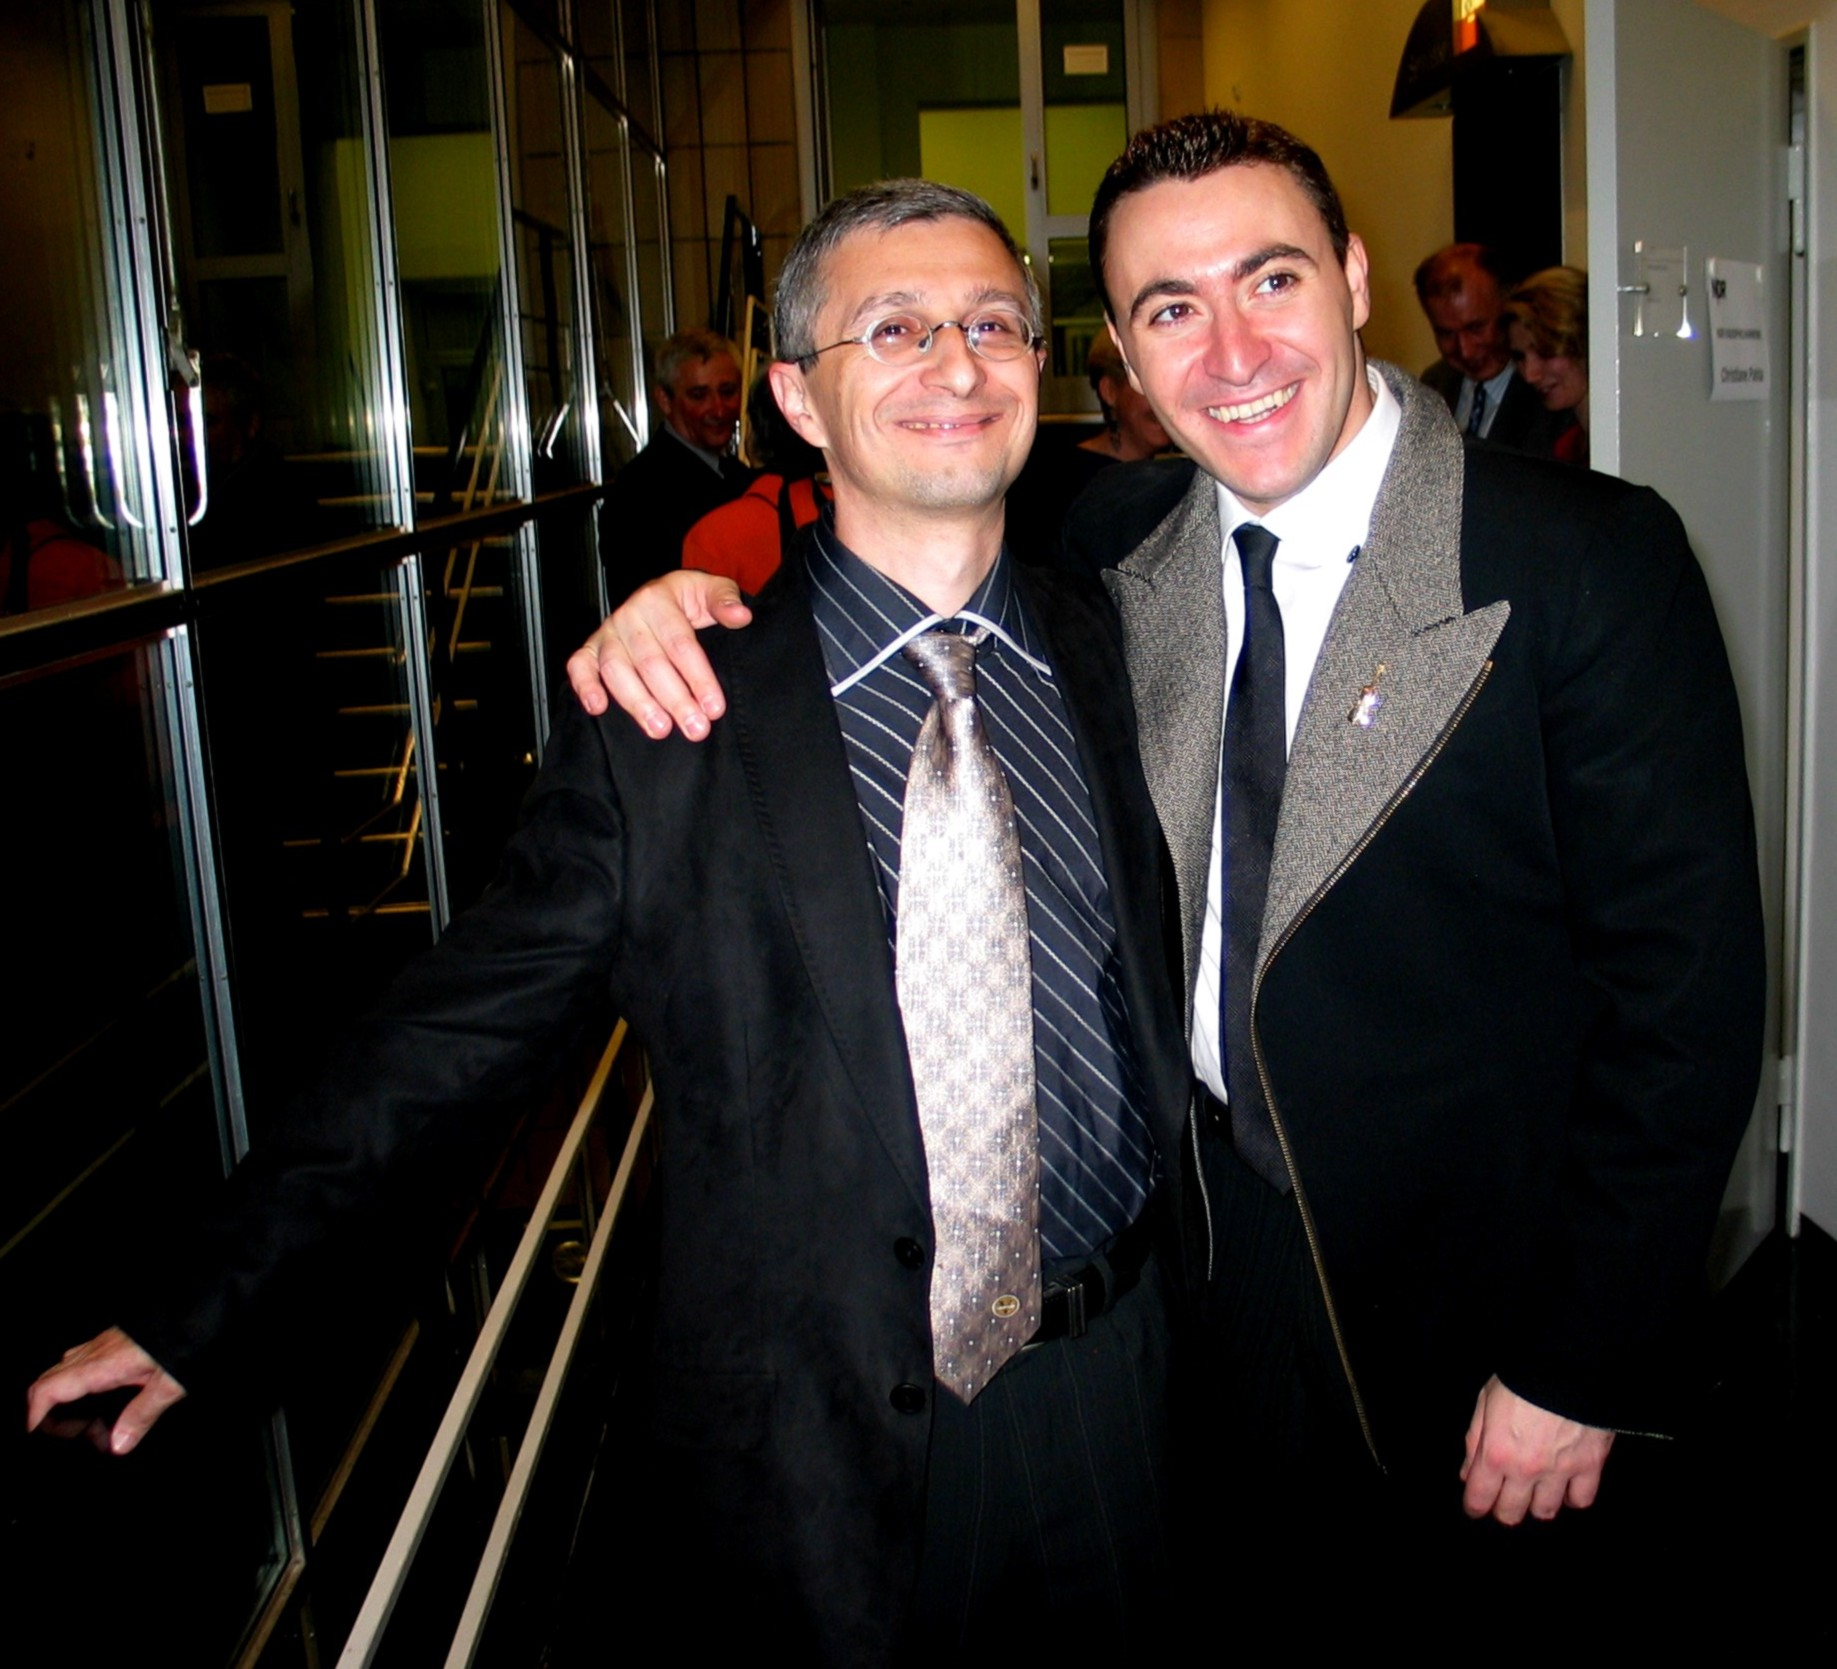 with Maxim Vengerov, Hannover